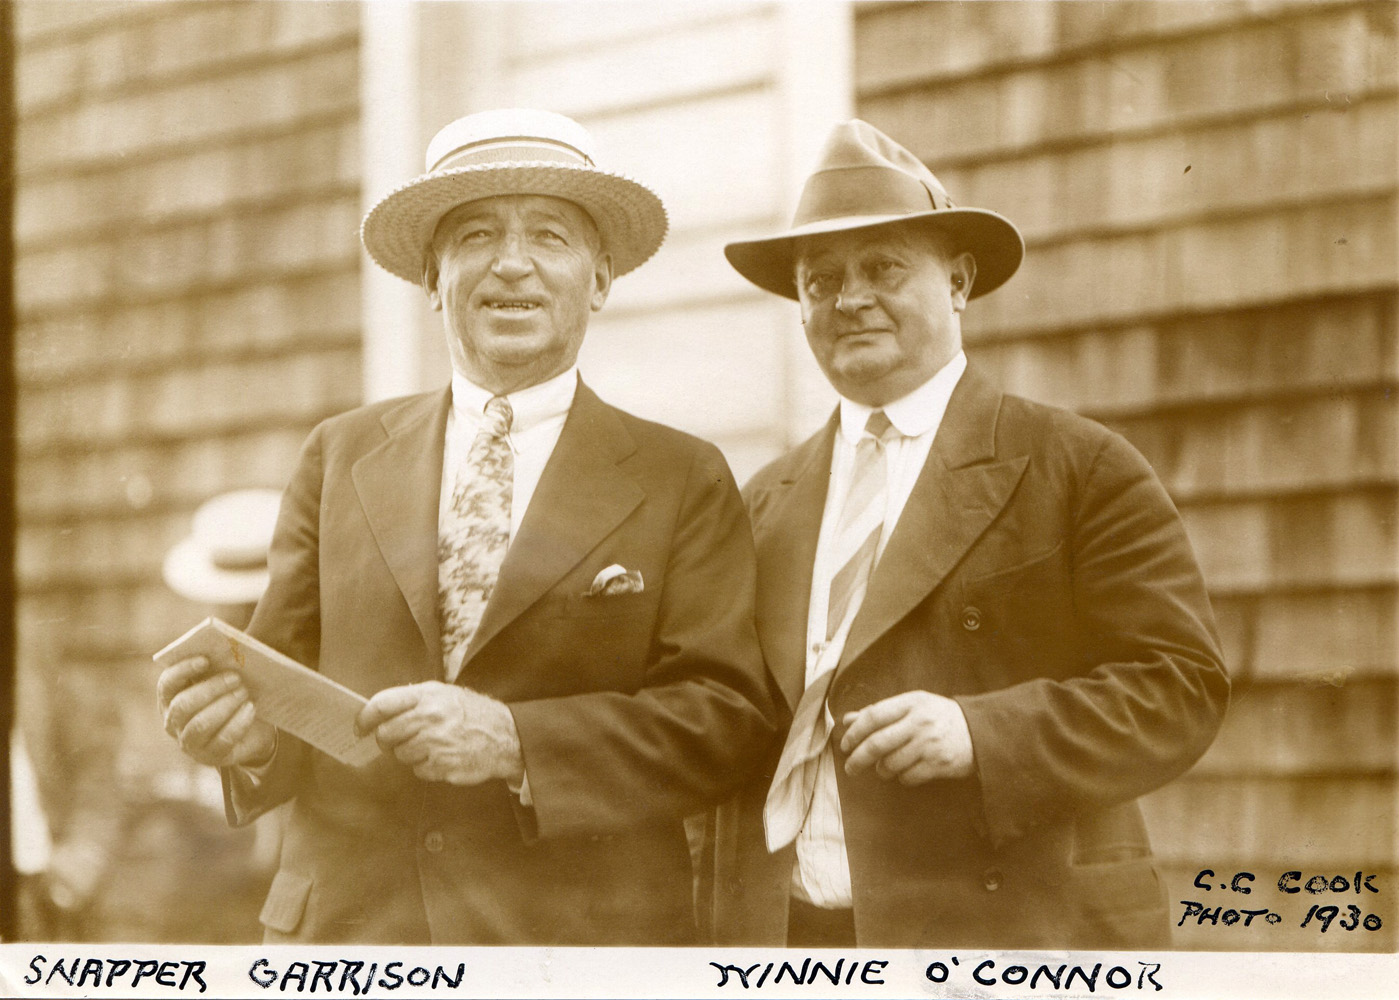 Hall of Fame jockeys Snapper Garrison and Winnie O'Connor in 1930 (C. C. Cook/Museum Collection)